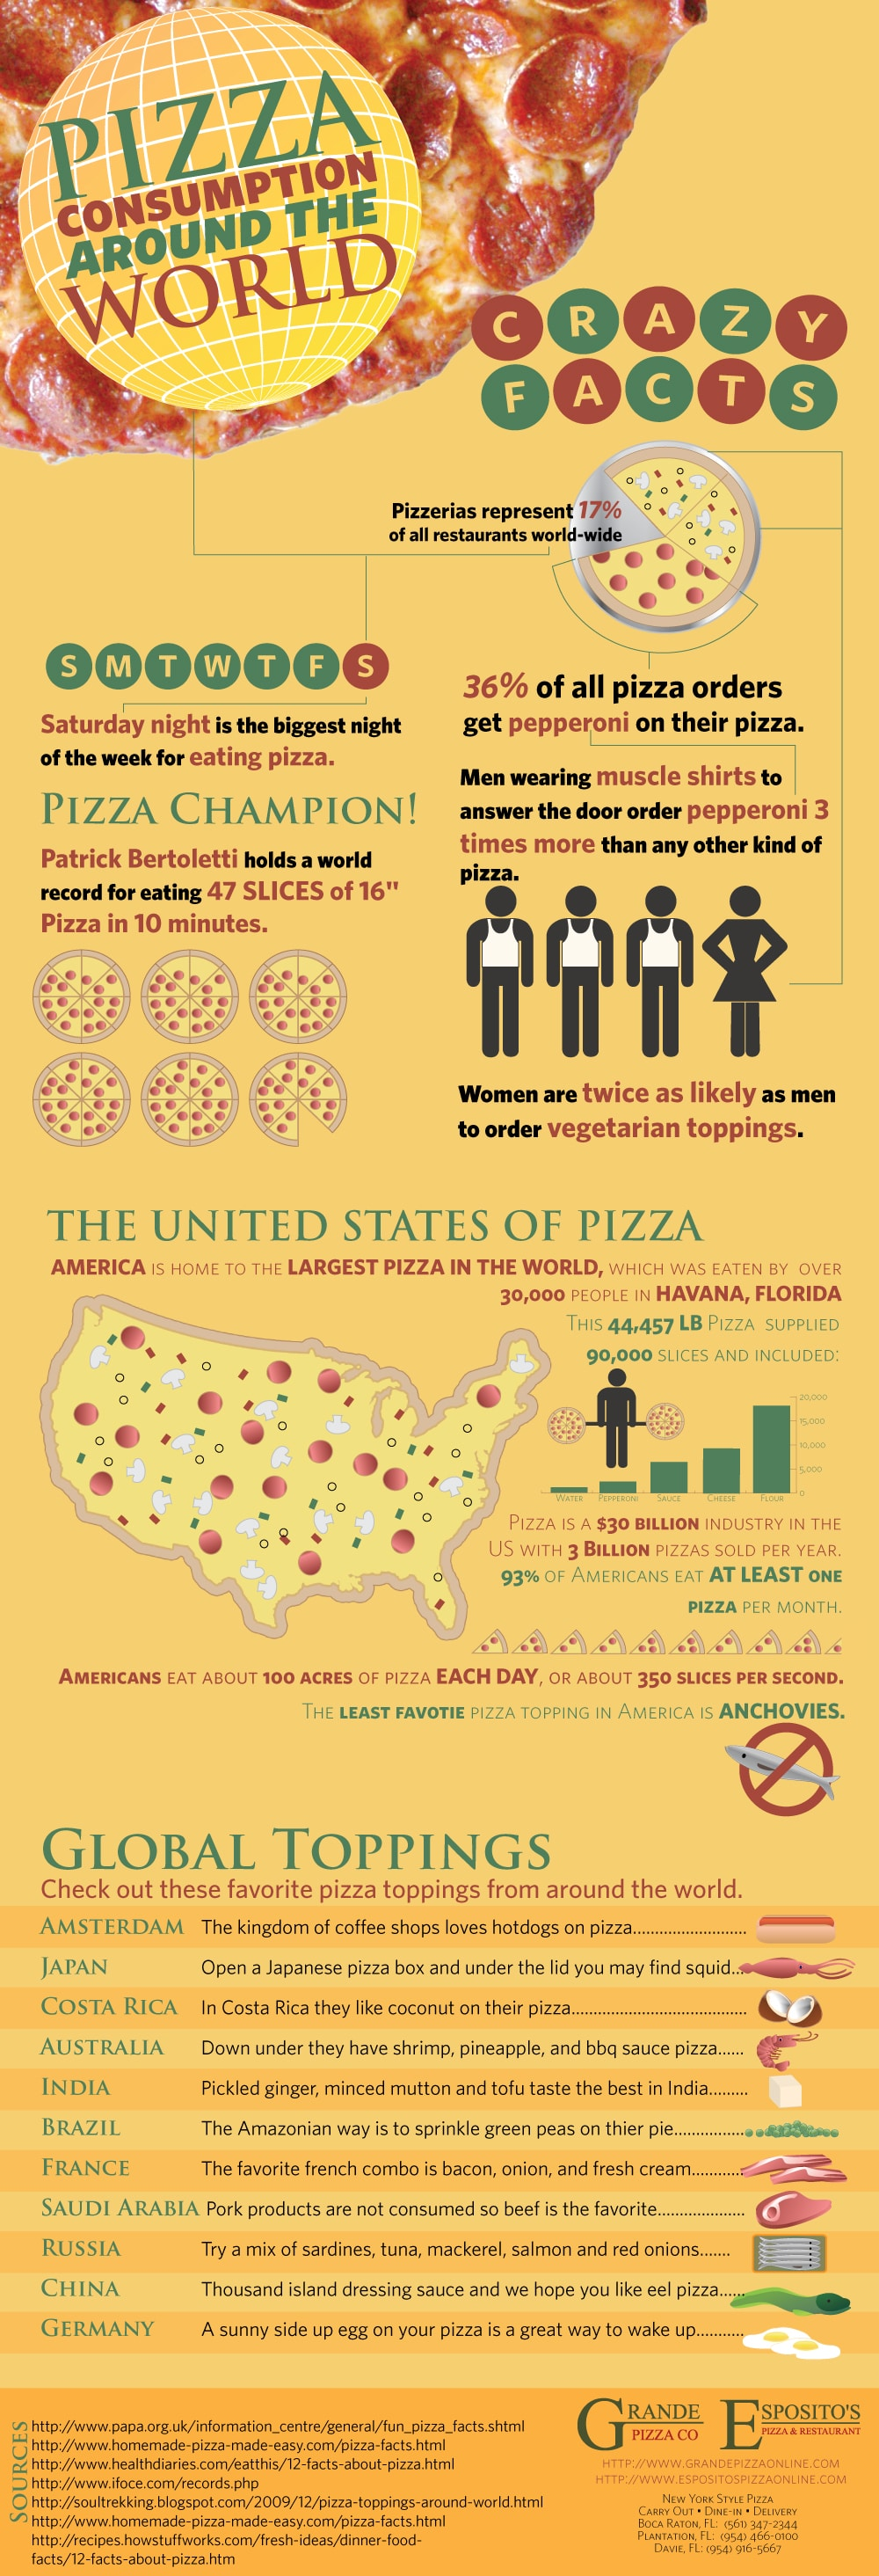 Pizza Around The World: The Amazing Statistics [Infographic]